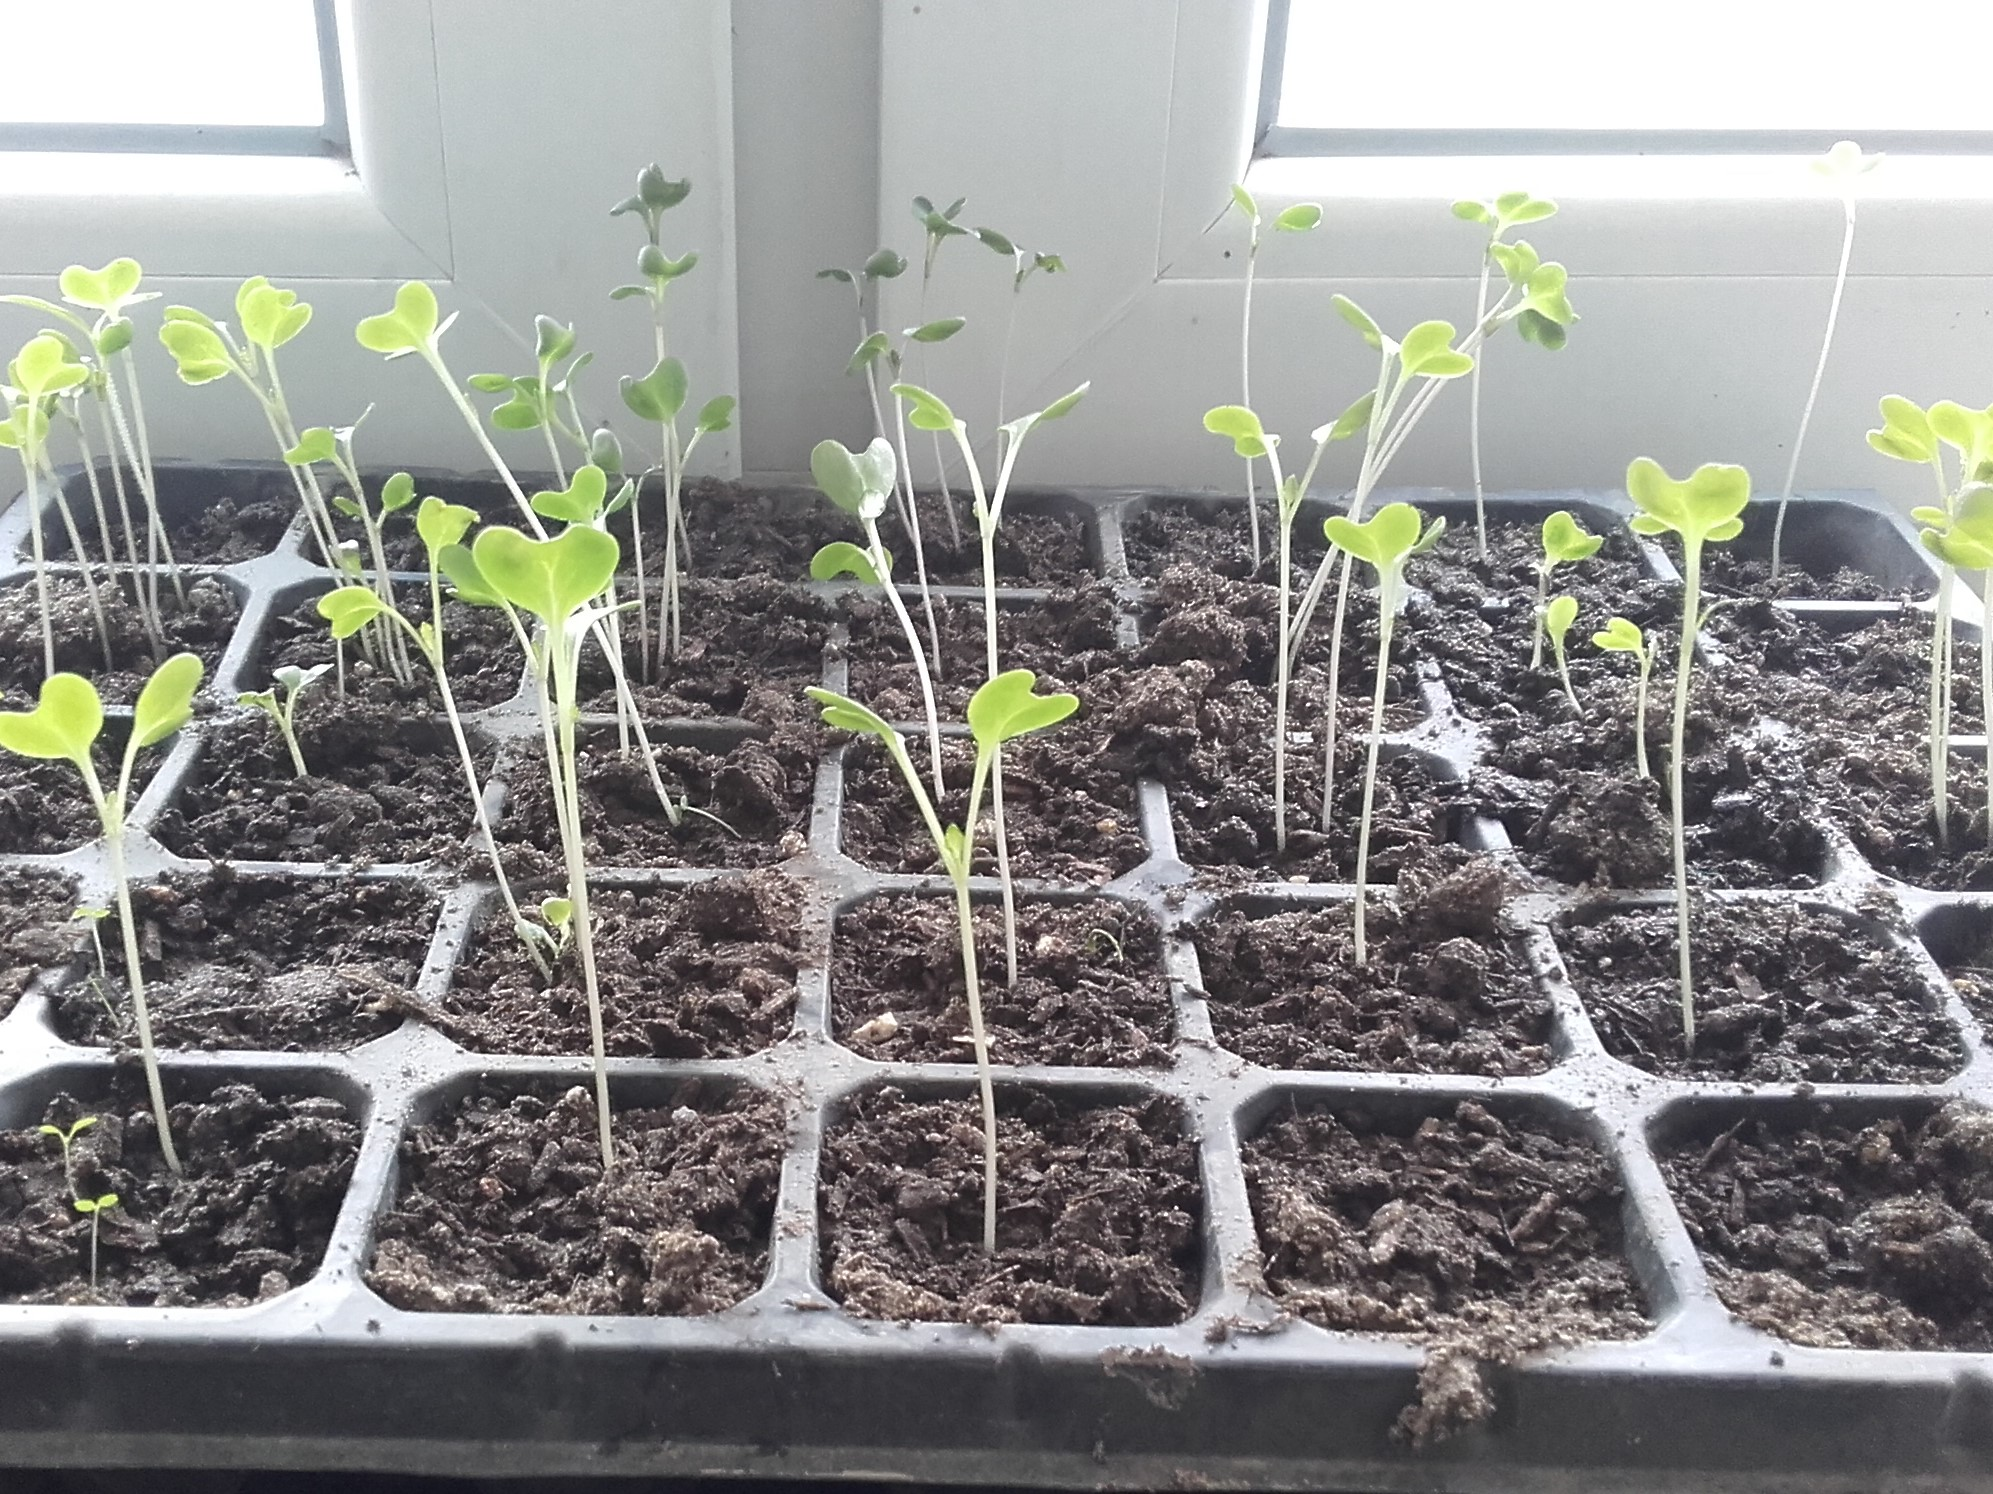 More seedlings building up their strength in the sun